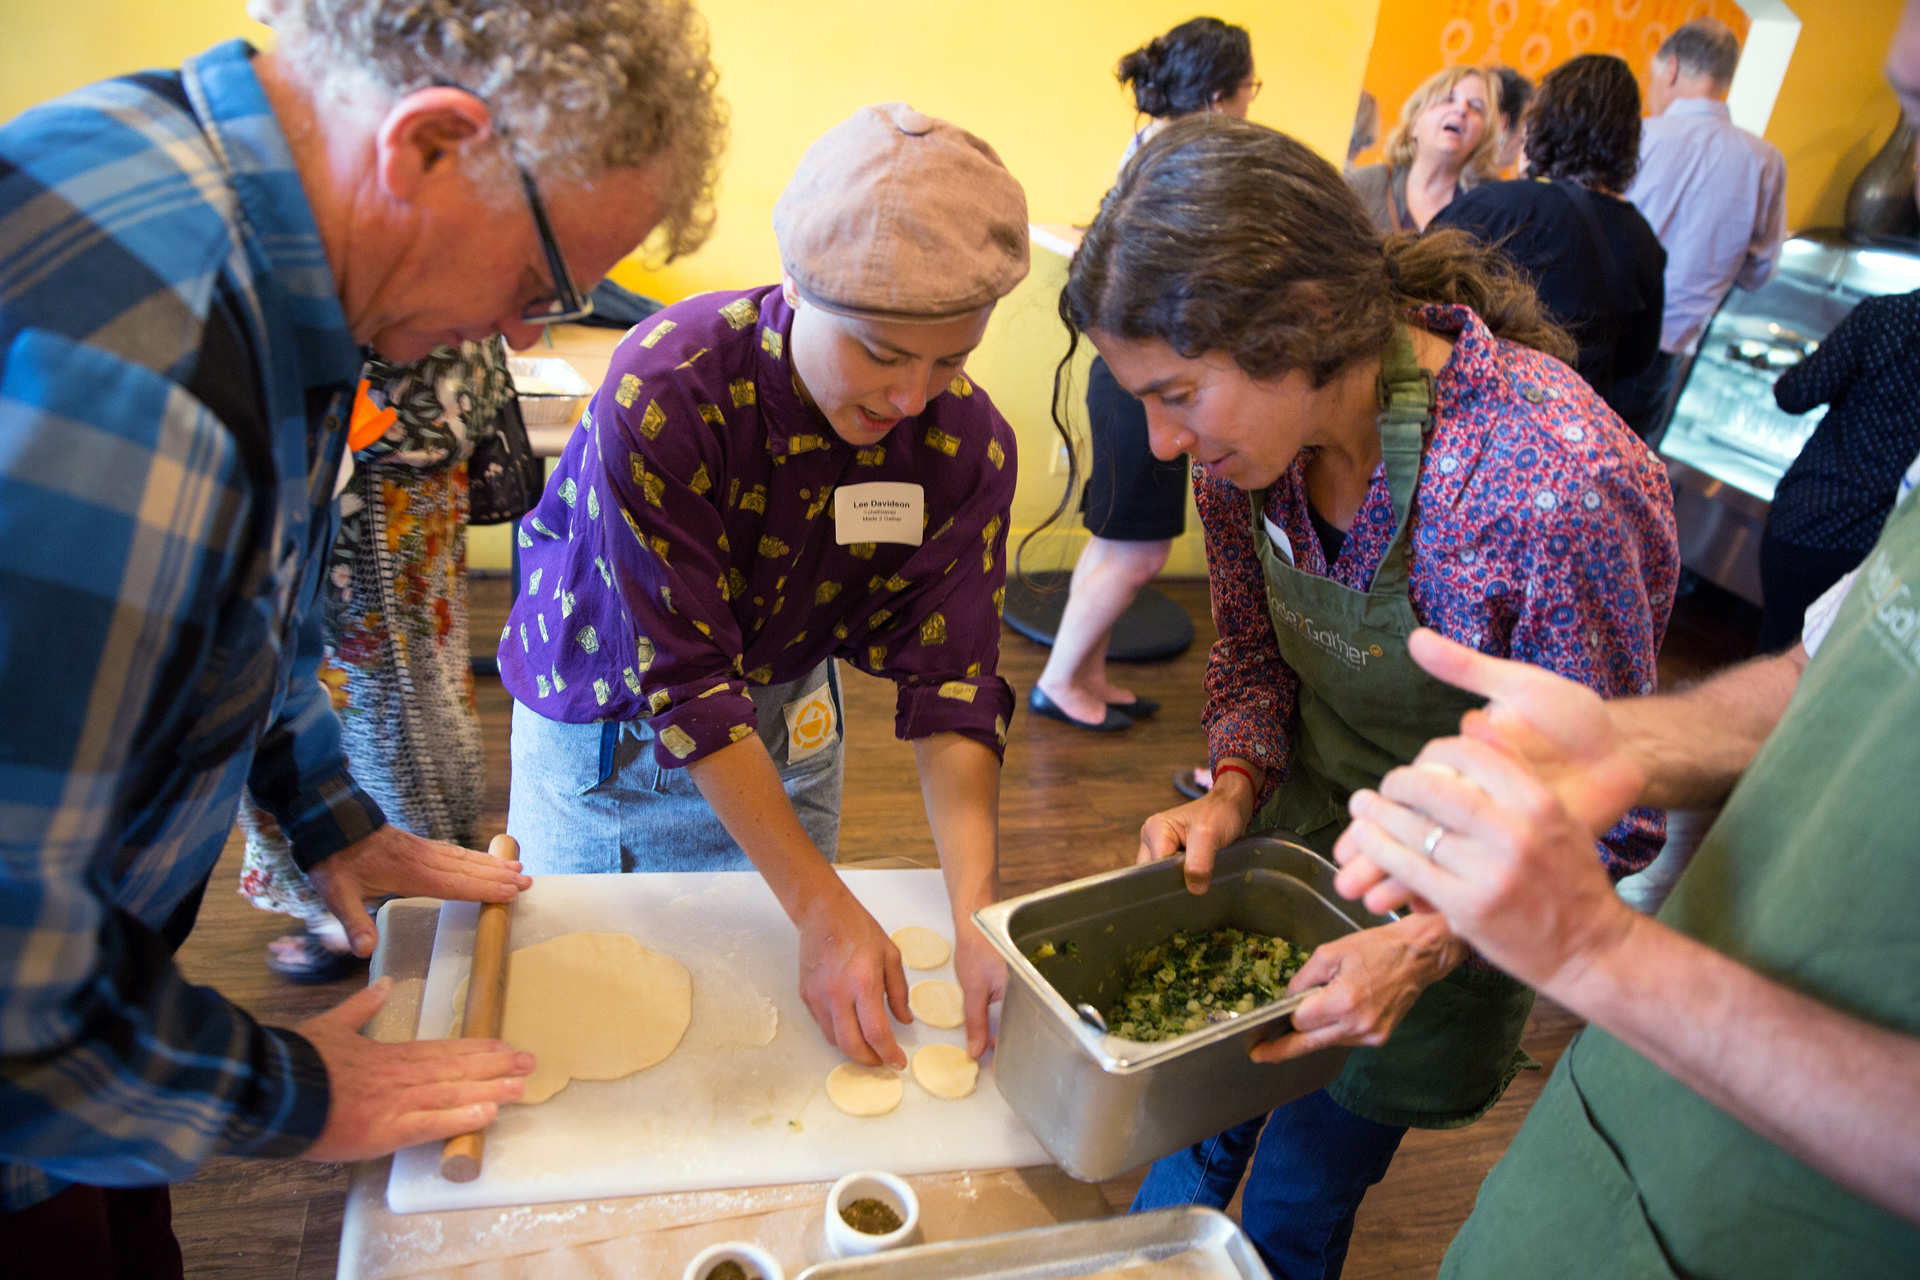 Chef Lee Davidson (center) instructs Peter Levitt, executive chef and co-owner of Saul's Deli and Wendy Goodfriend, senior interactive producer and experience architect at KQED, in fatayer-making at a recent Illuminoshi event at Ba-Bite in Oakland.